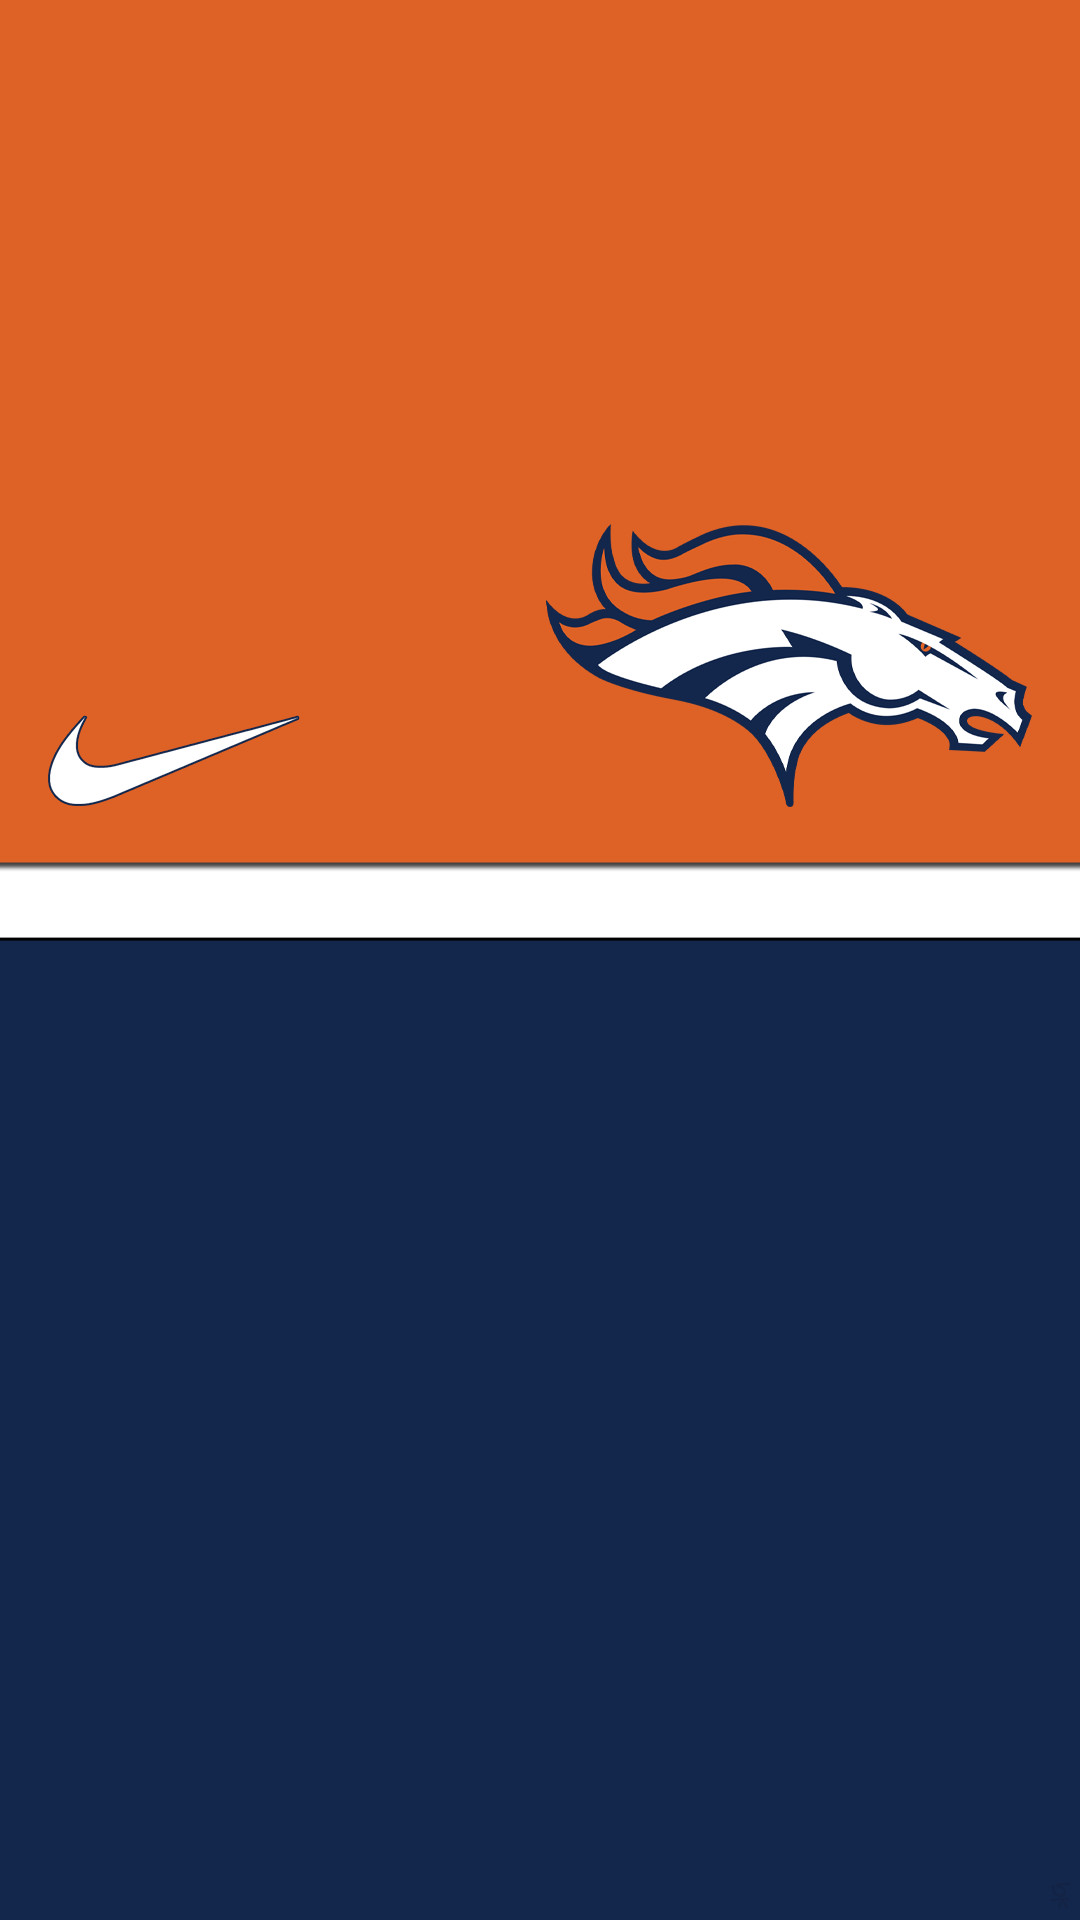 Denver Broncos Wallpaper Screensavers 69 images